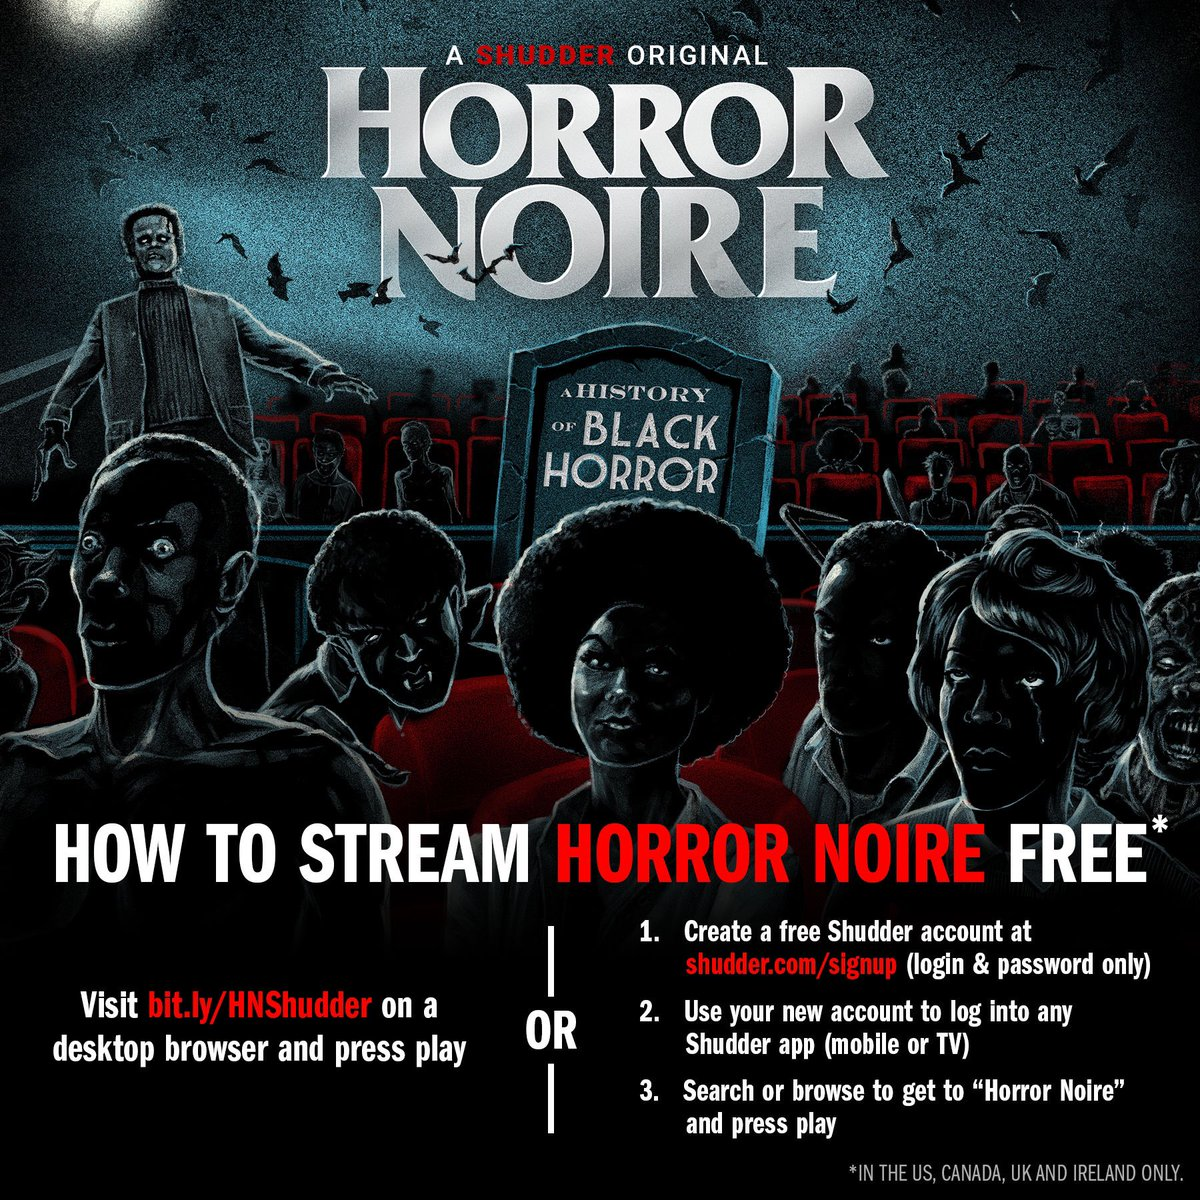 There's no excuse not to watch our documentary now! Horror Noire is free for everyone to watch. You can watch it on your desktop or make an account on @Shudder to watch it however you like. Don't miss out. #HorrorNoire